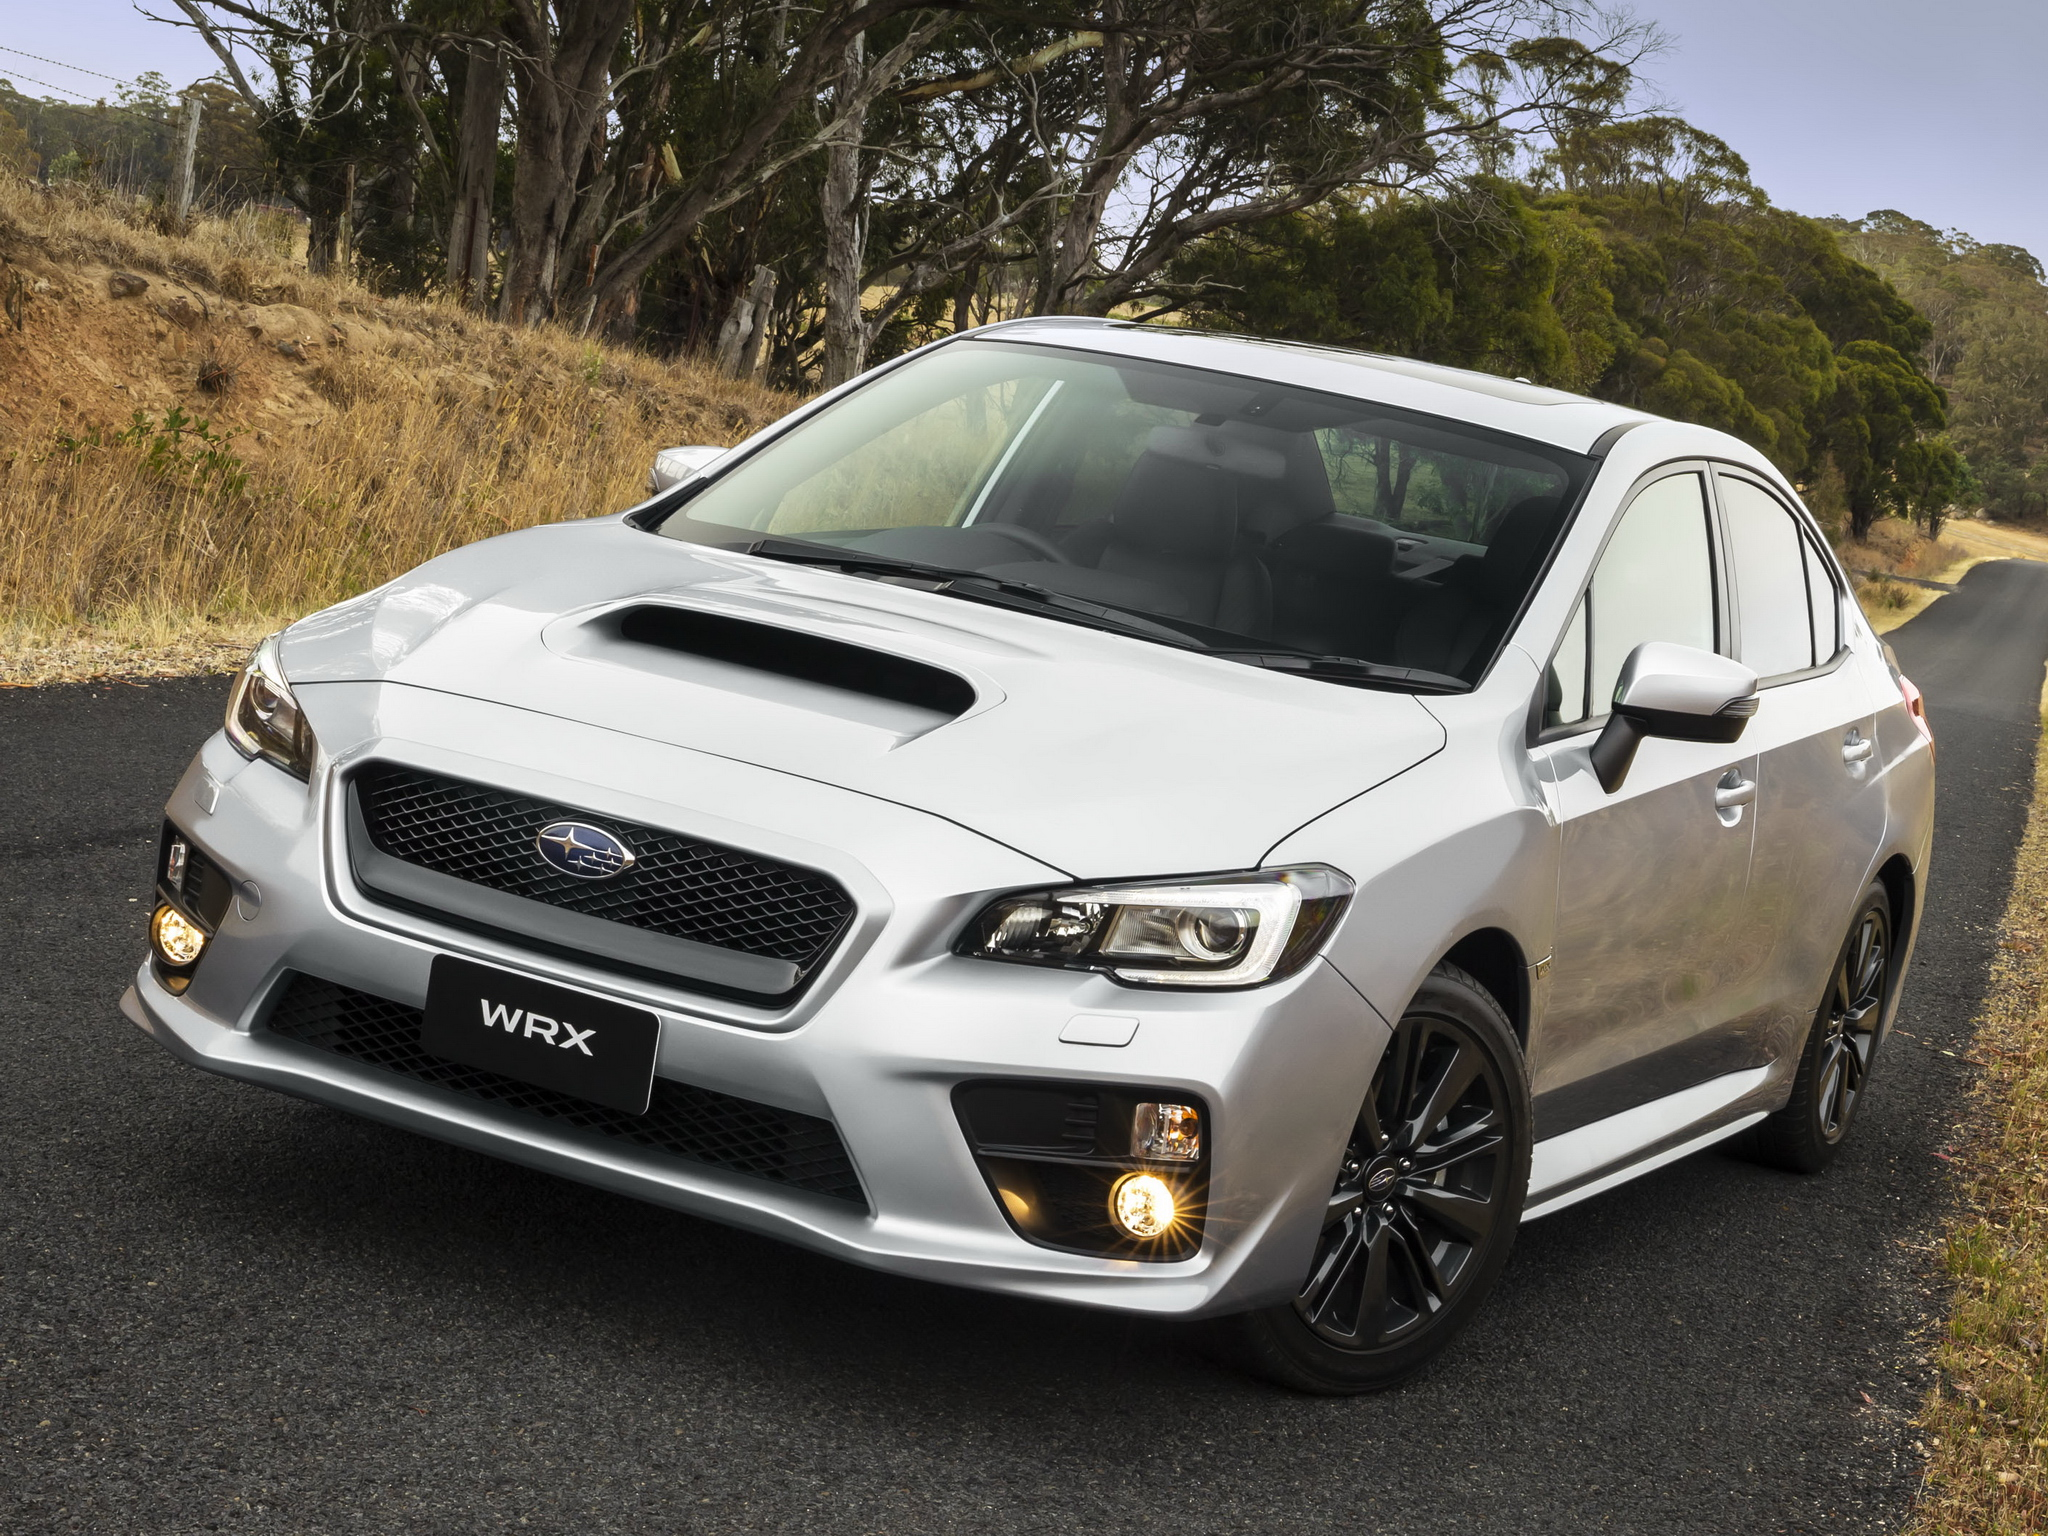 2015 subaru wrx sells almost as well as the forester australia autoevolution. Black Bedroom Furniture Sets. Home Design Ideas